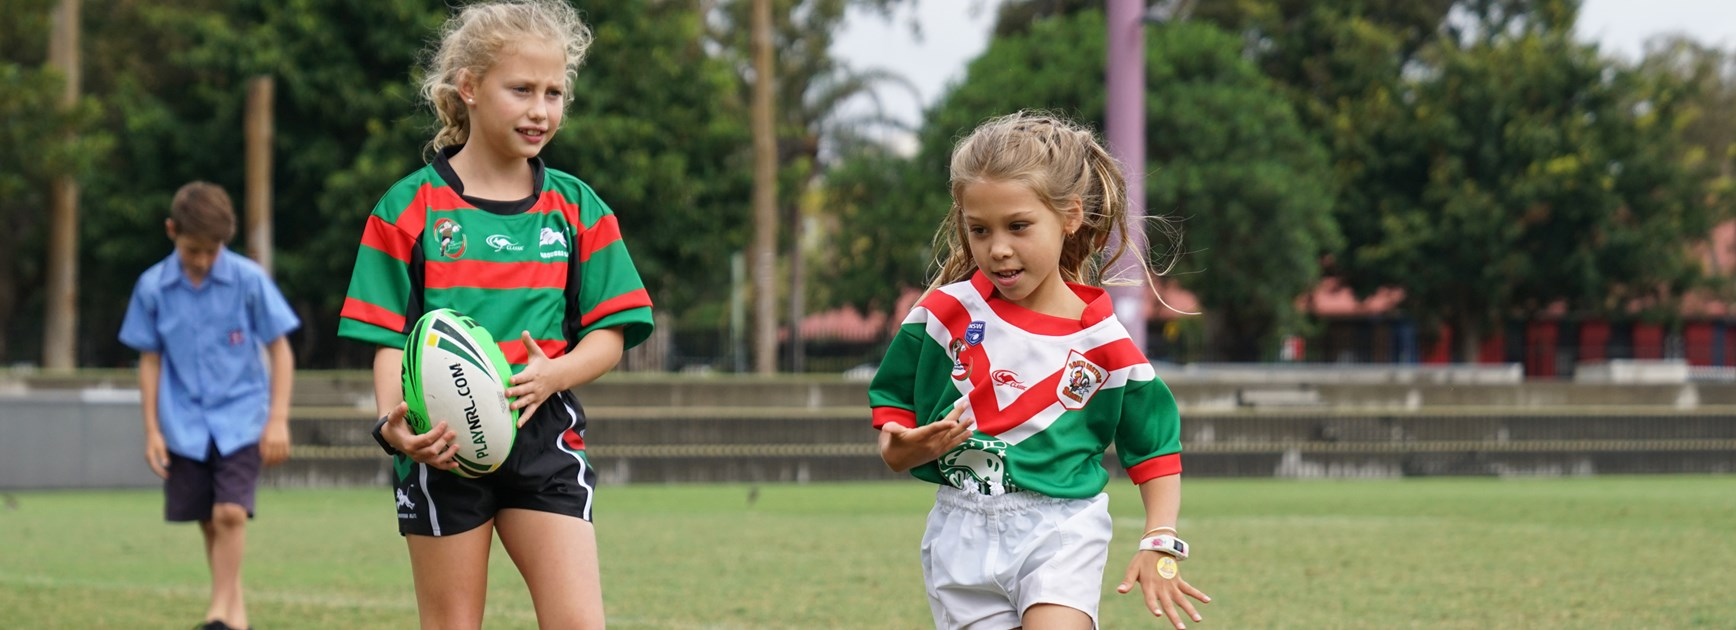 2020 NRL Touch Premiership Announced